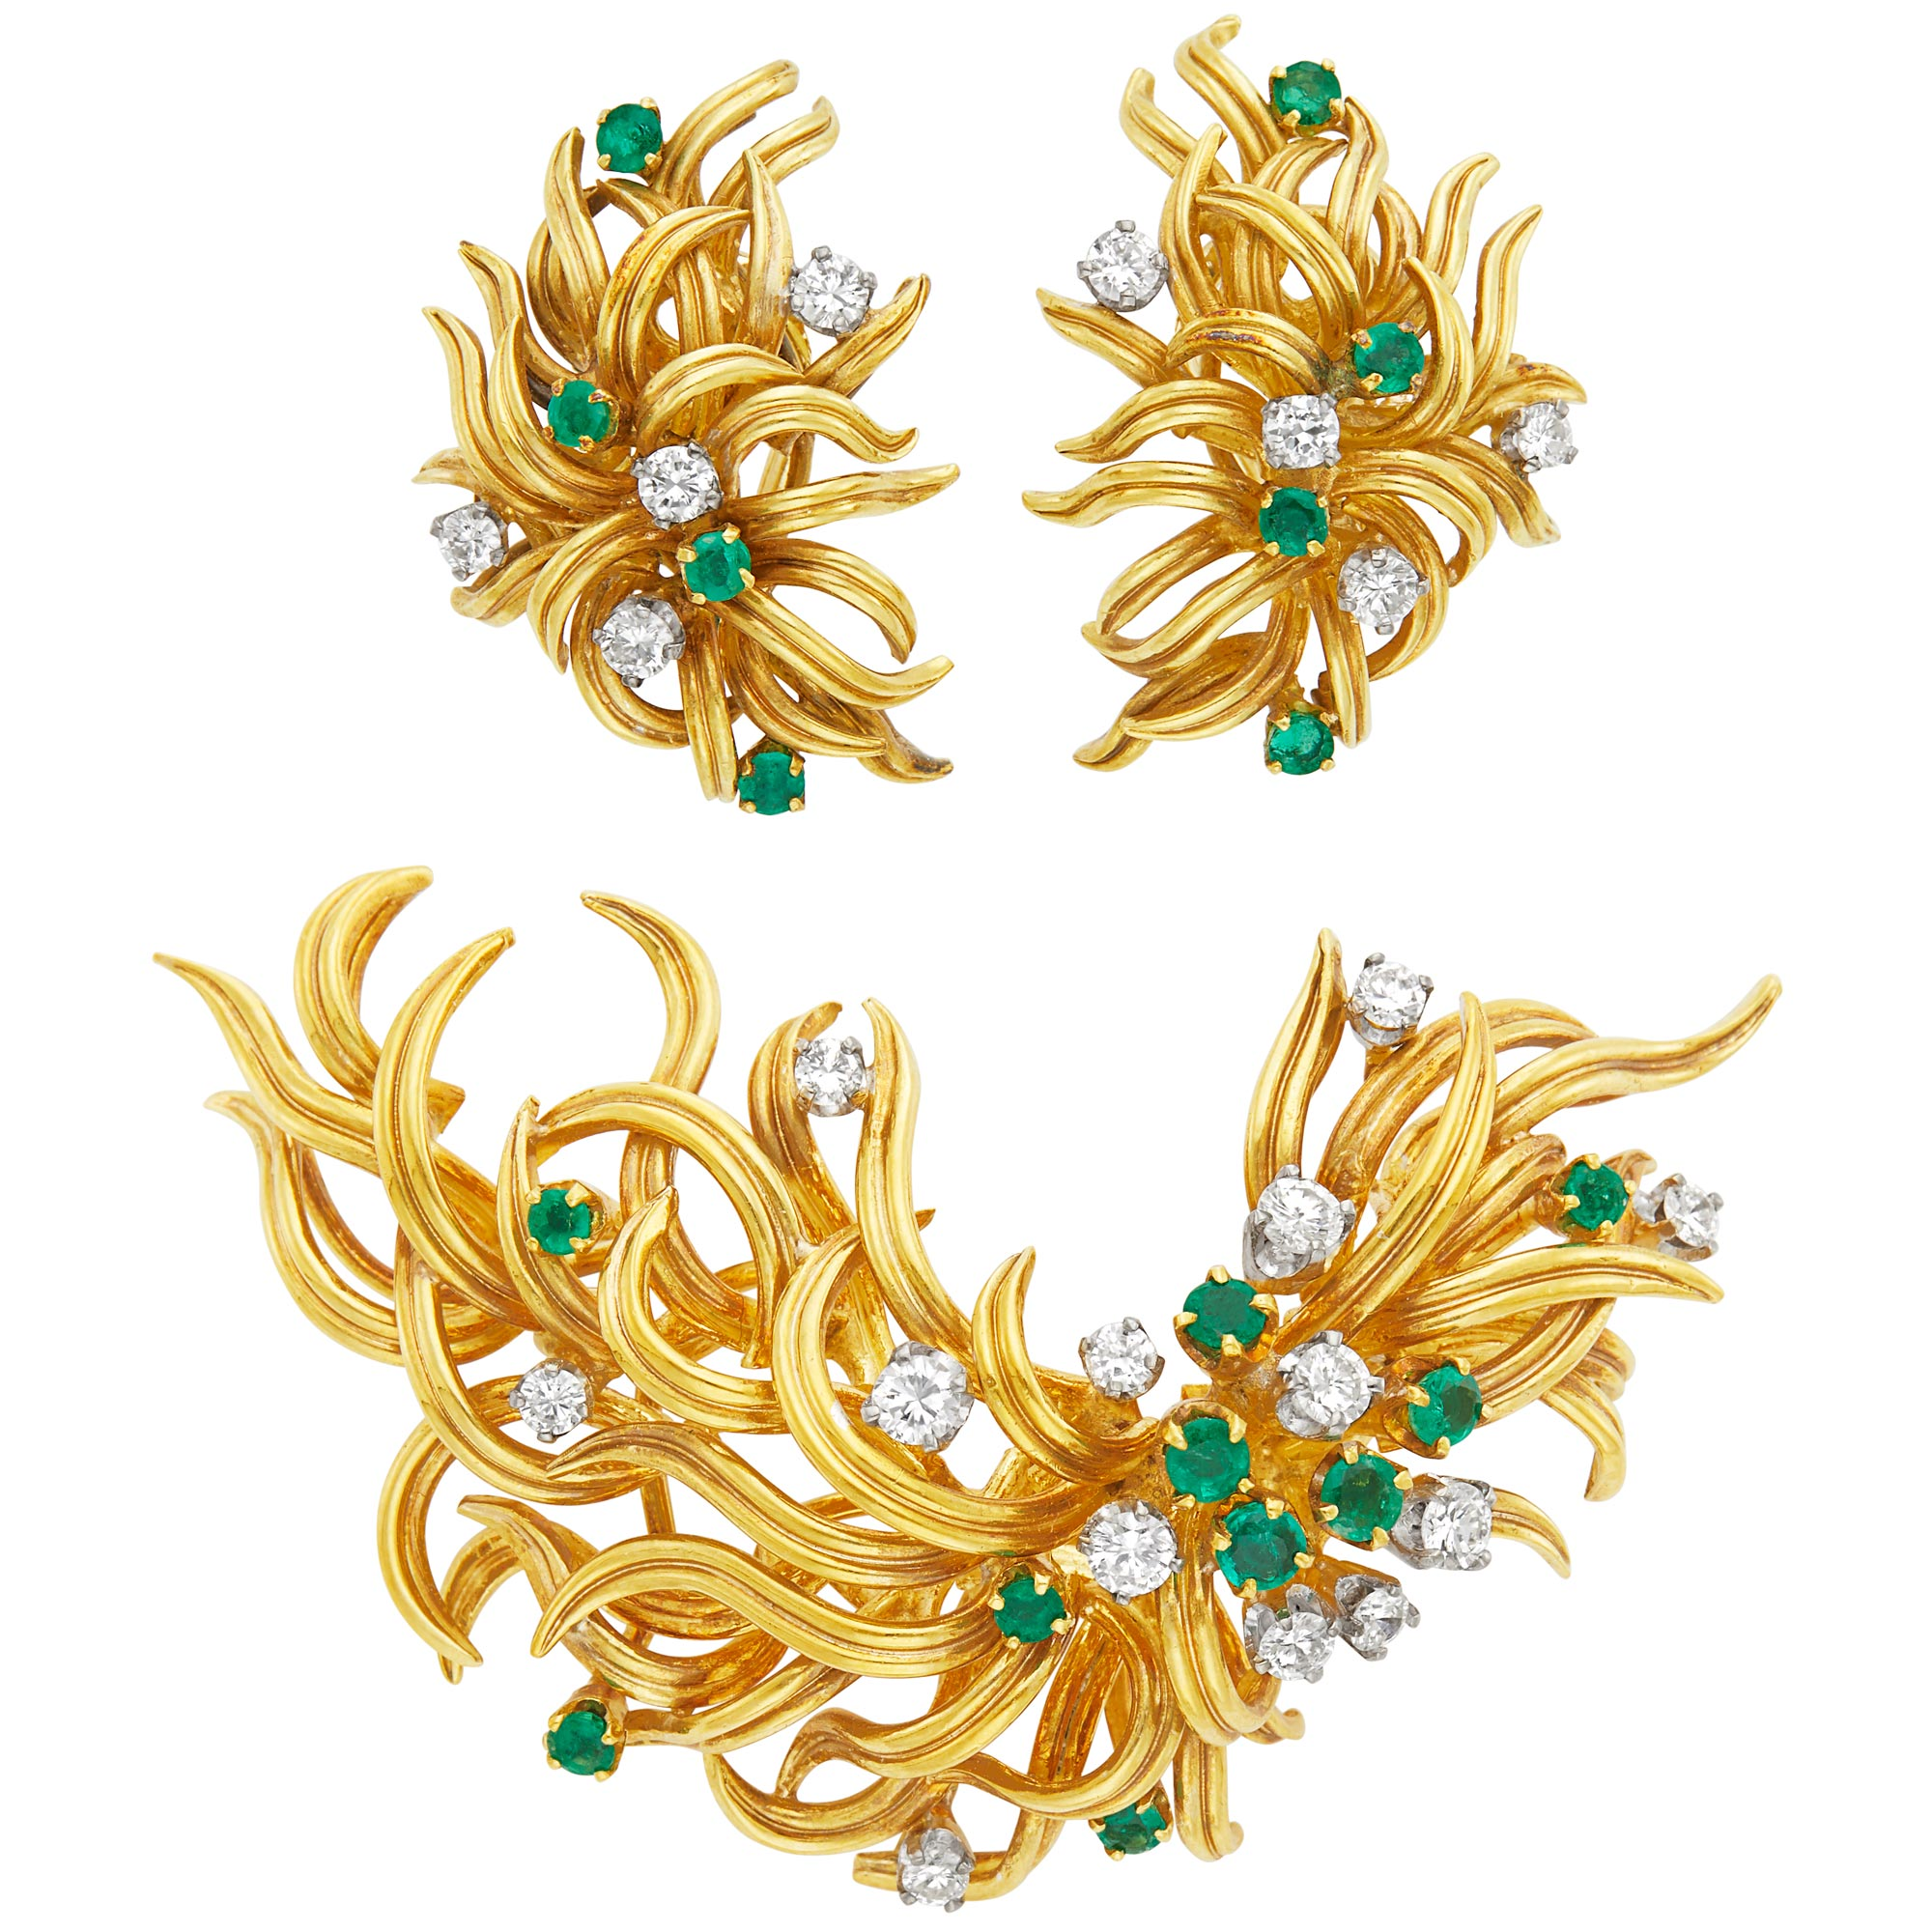 Lot image - Pair of Gold, Emerald and Diamond Earclips and Brooch